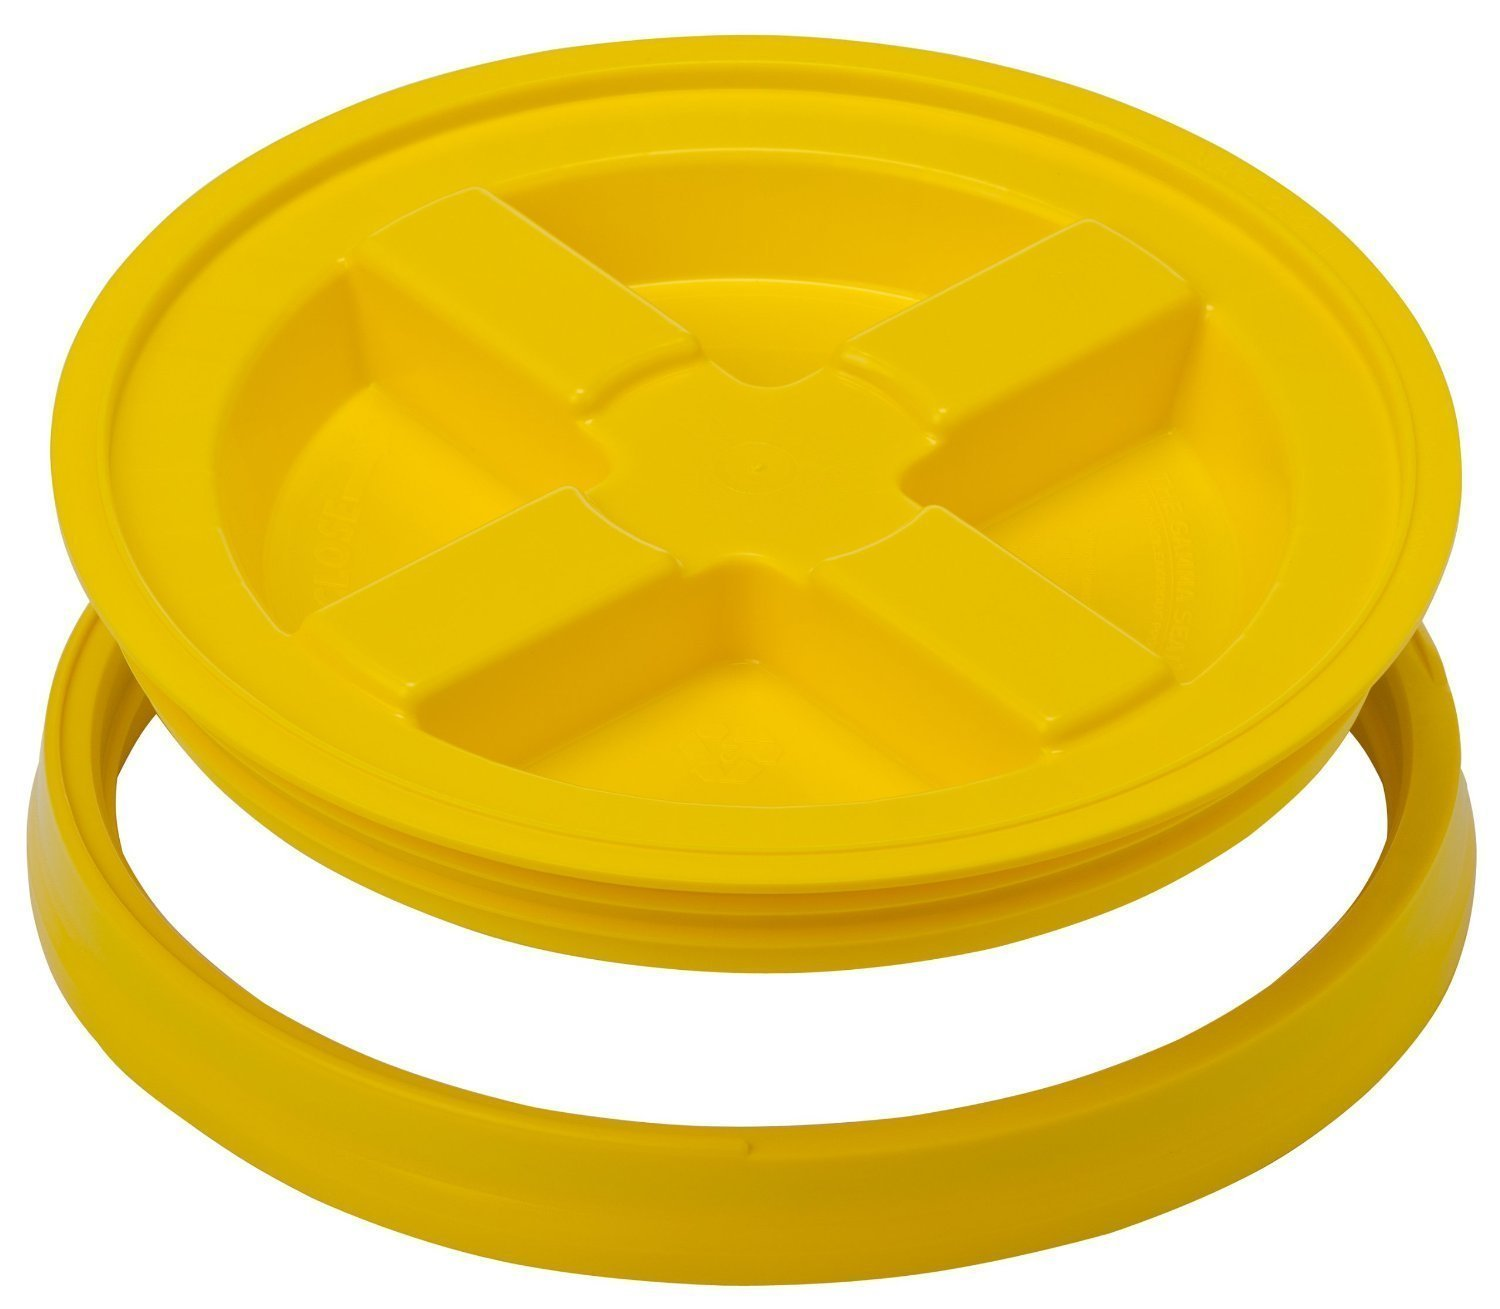 Gamma Seal Lid - Yellow - For 3.5 to 7 Gallon Buckets or Pails Gamma2